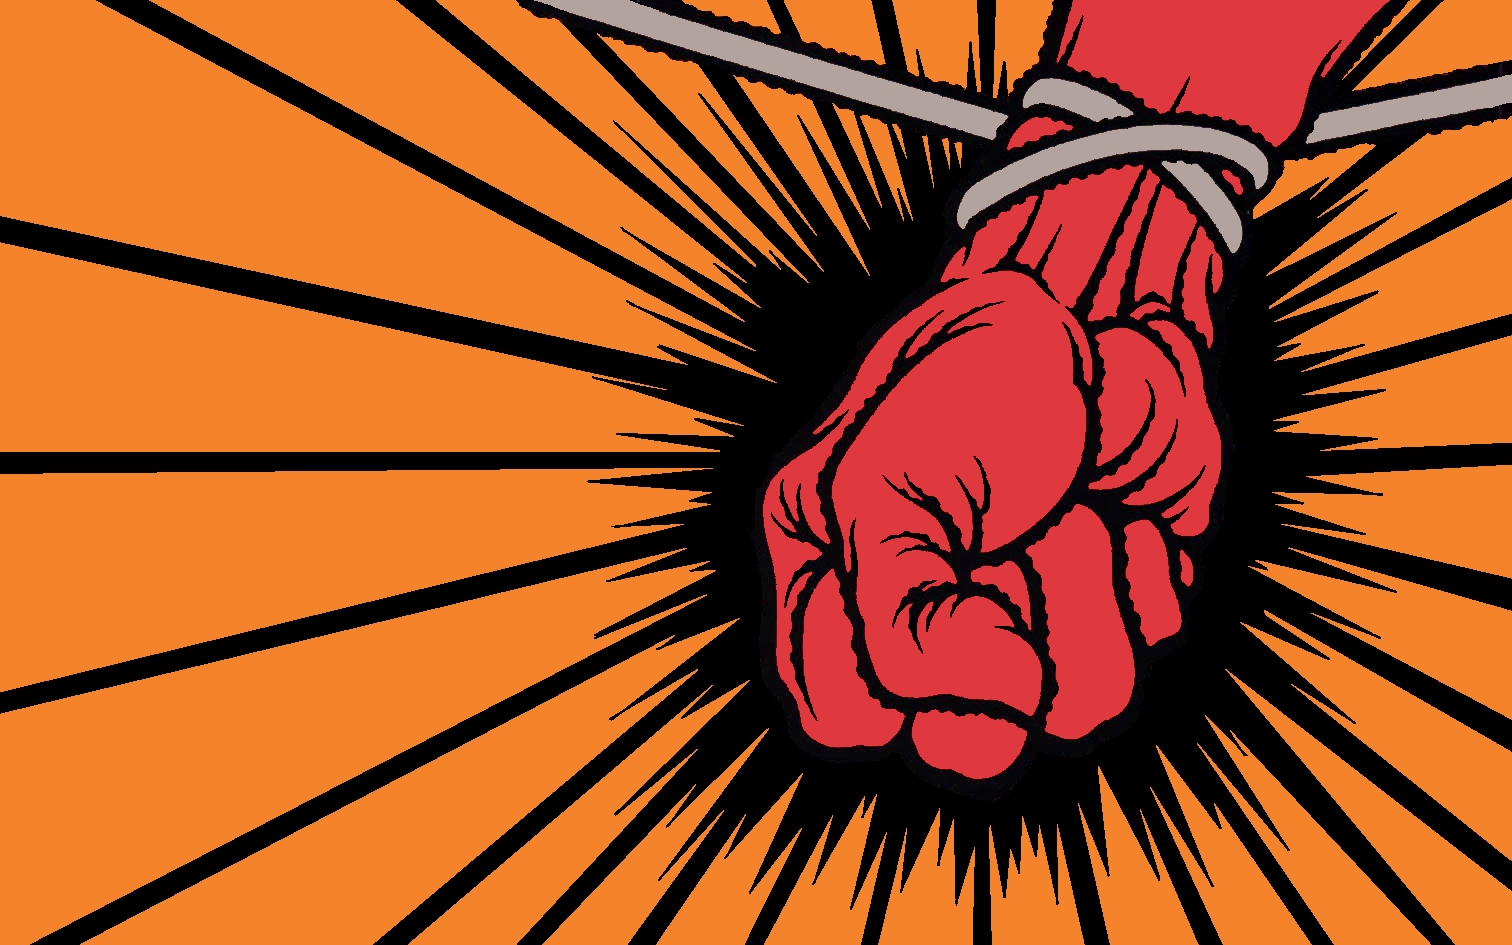 St. Anger Cover Wallpaper by ipunchheads on DeviantArt